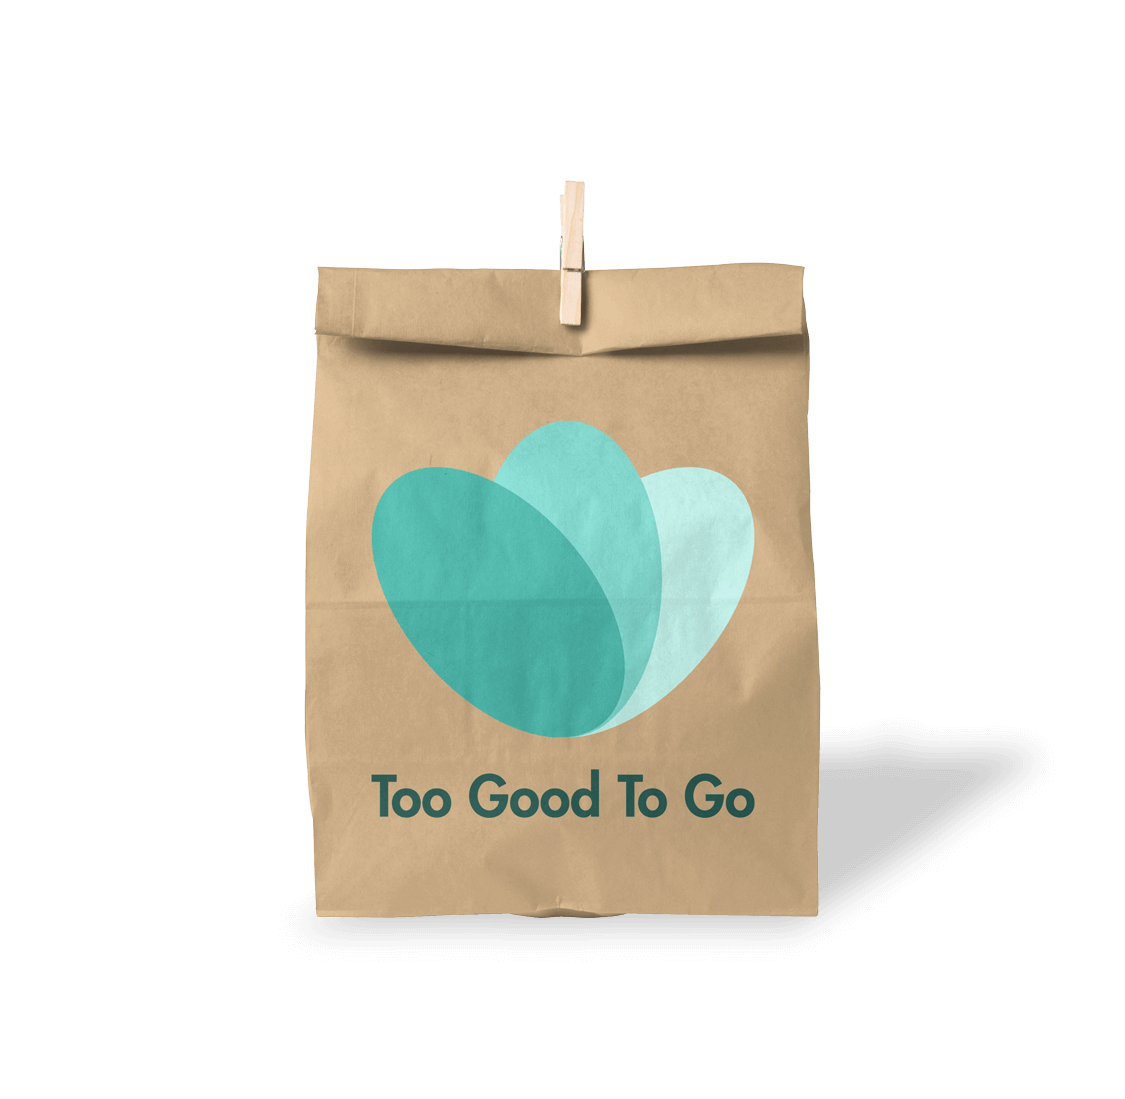 To Good to Go - Bag